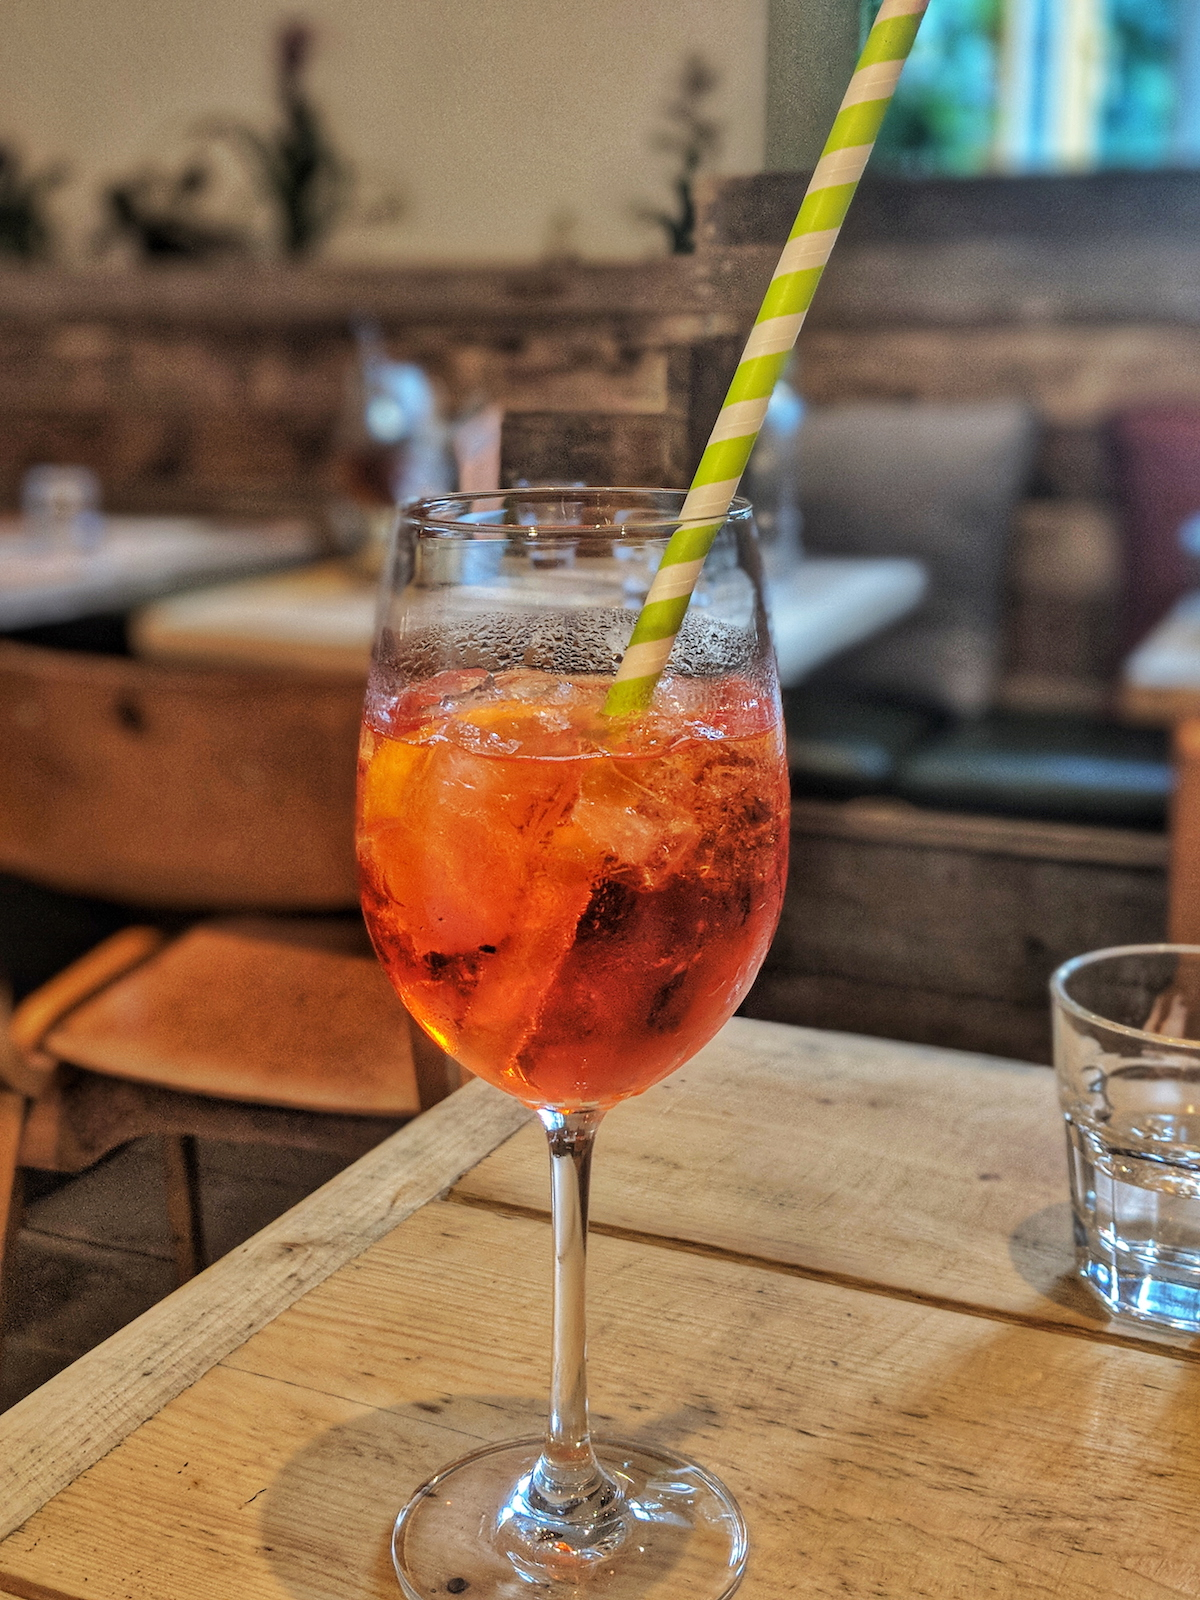 The Purezza Spritz: Purezza's own take on the Italian classic